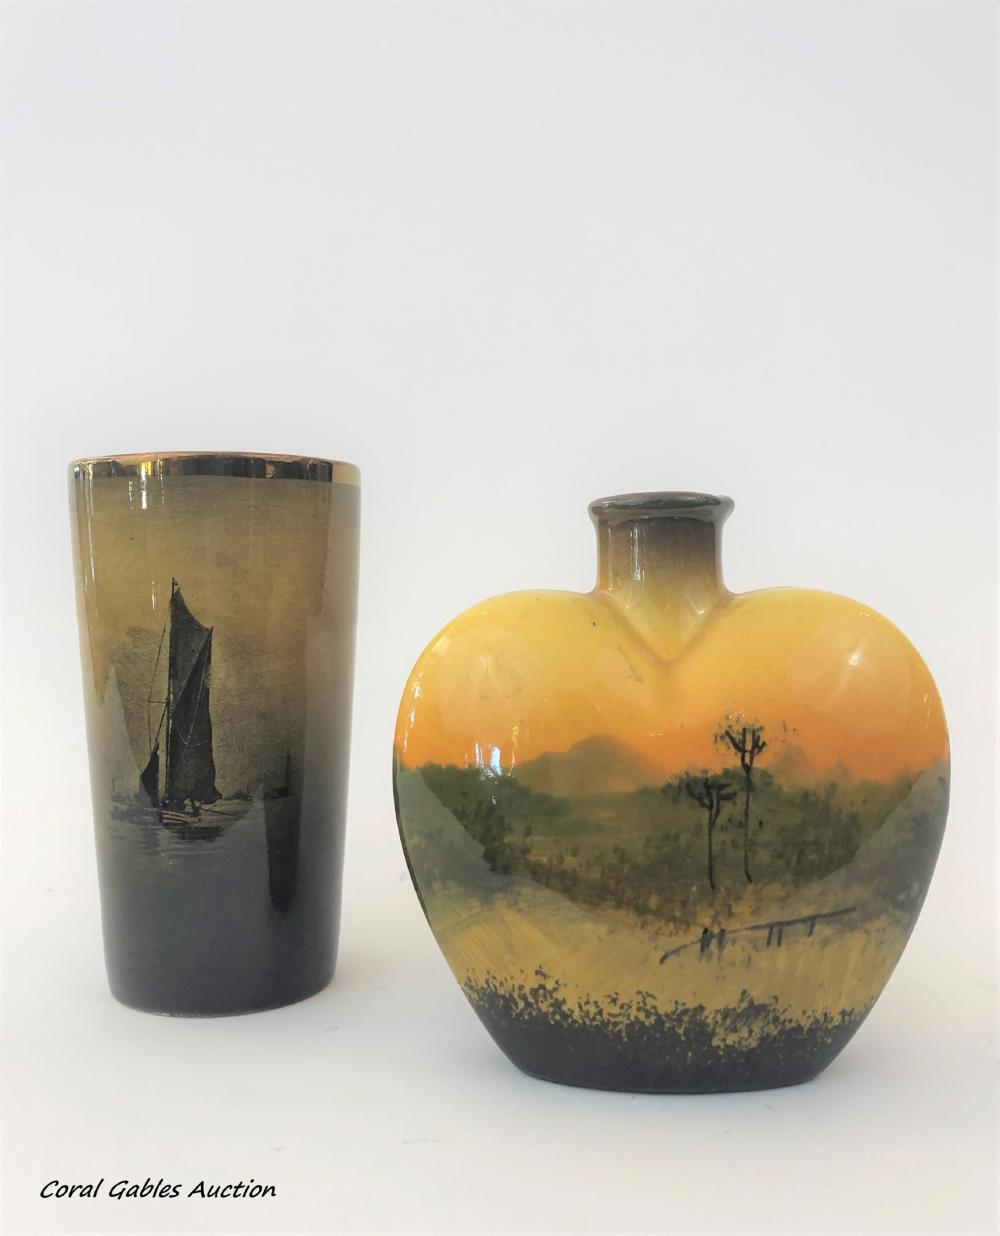 Two pieces of hand-painted glass